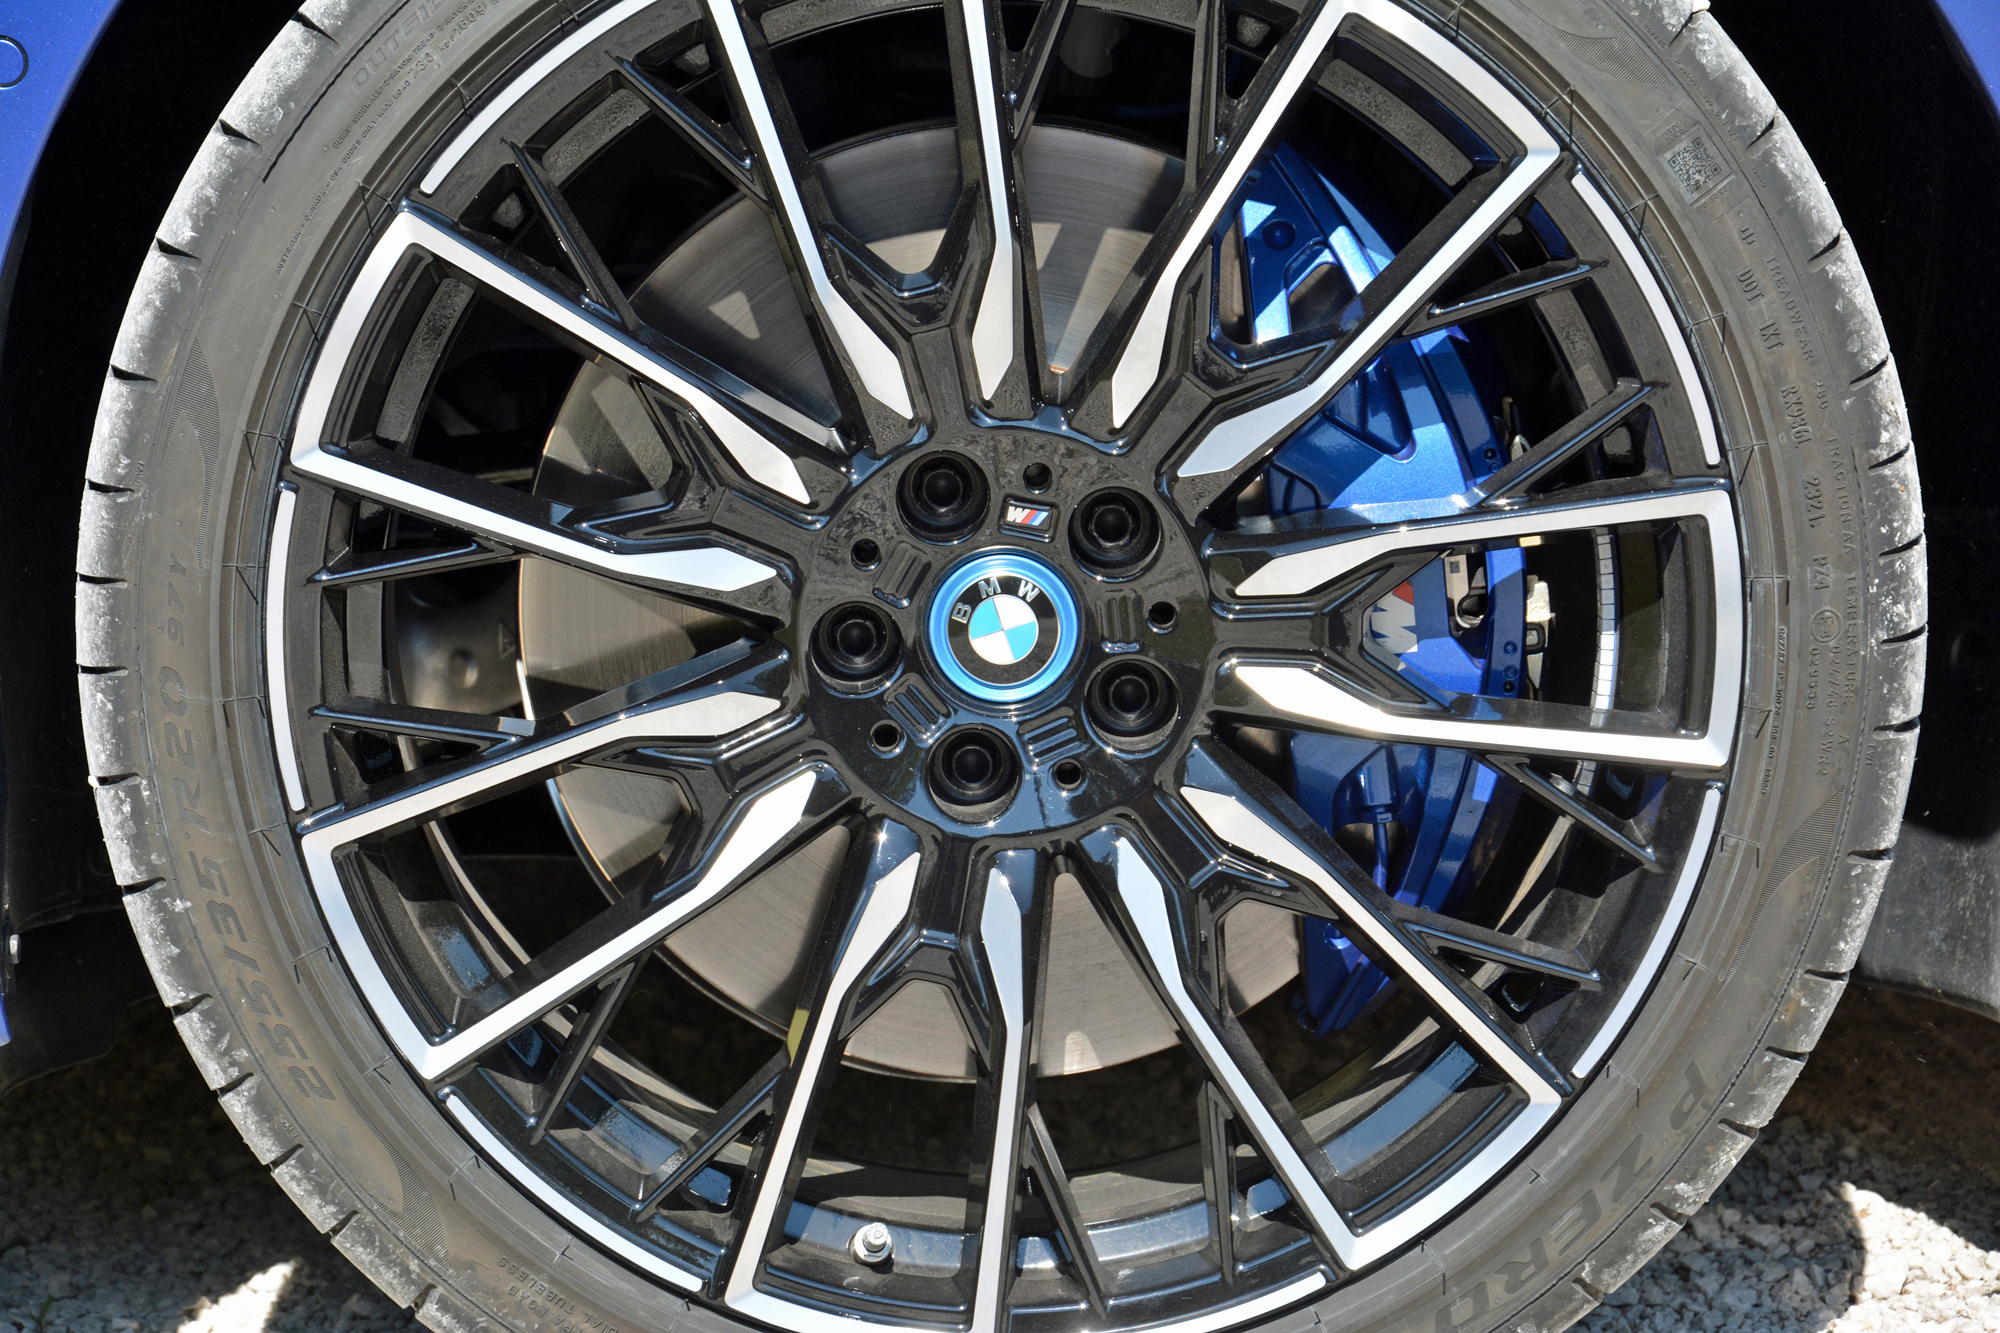 2022 BMW i4 M50 wheel and tire